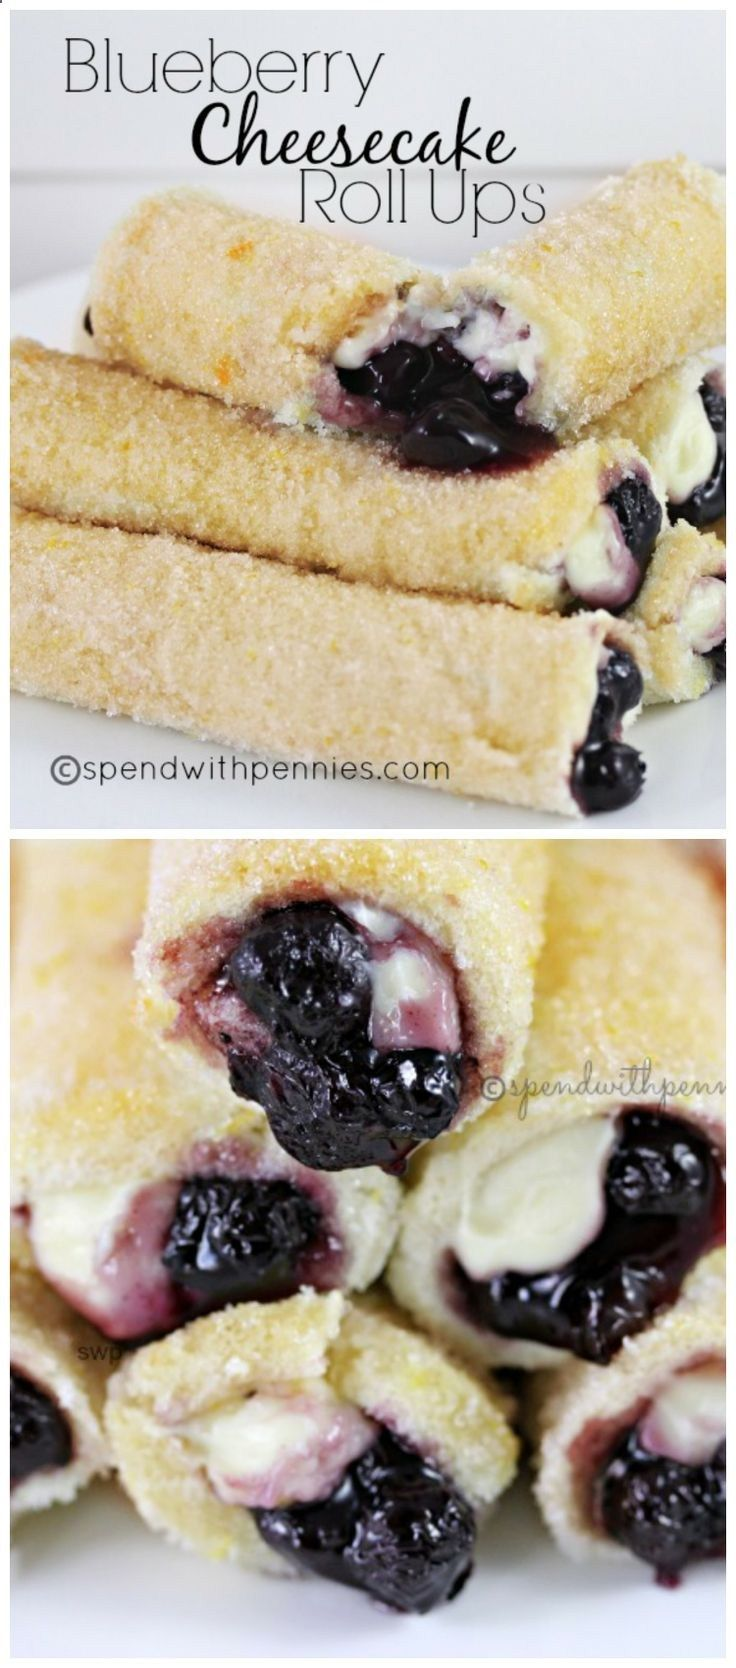 Blueberry Cheesecake Roll Ups!